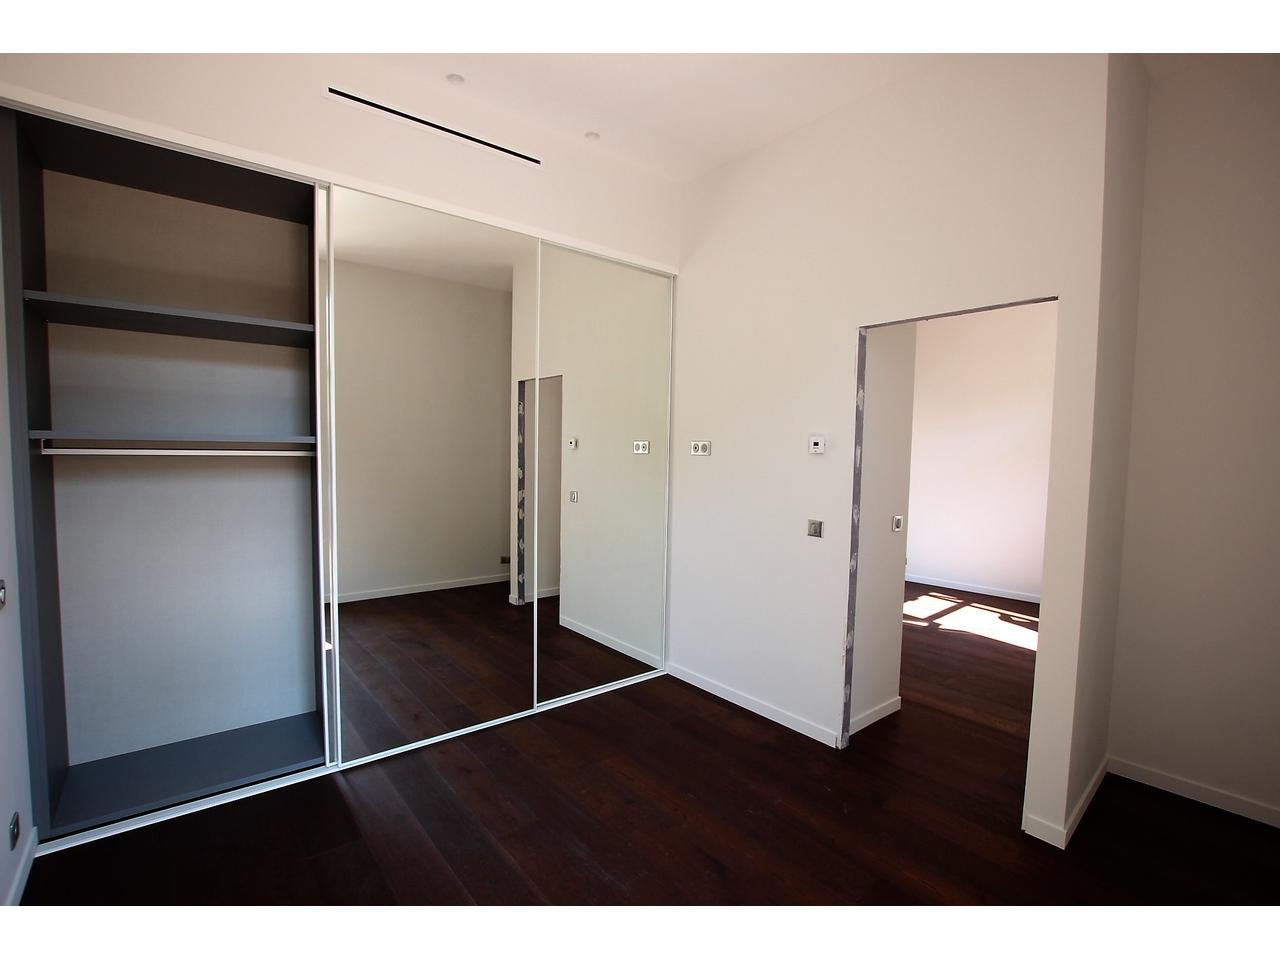 Apartment with mezzanine - perfect as rental investment